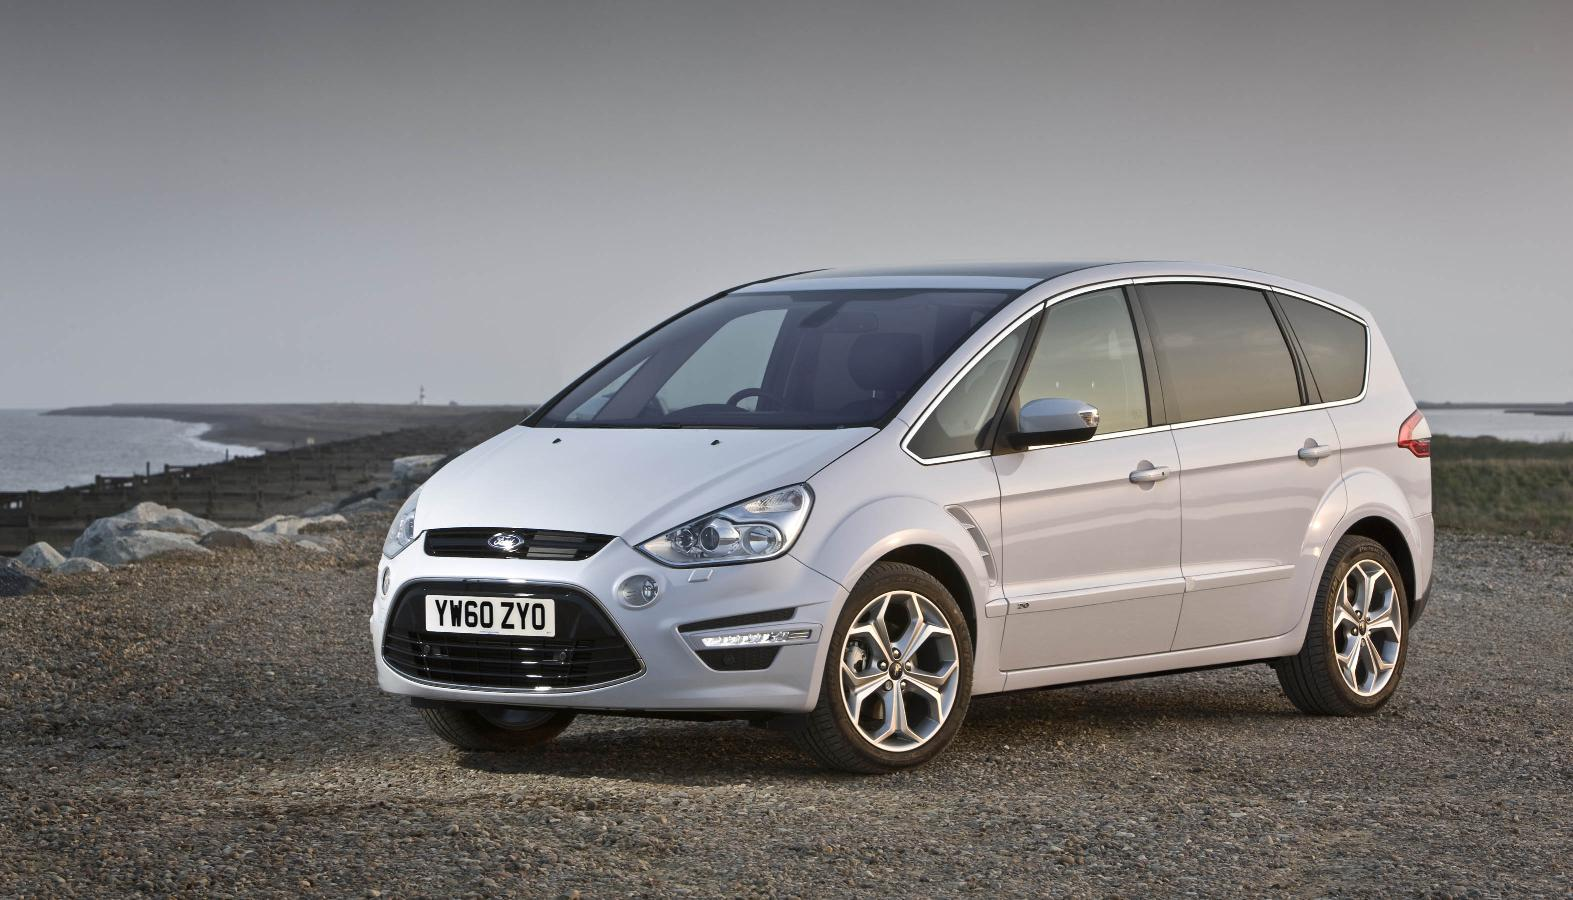 ford s max receives fifth businesscar award autoevolution. Black Bedroom Furniture Sets. Home Design Ideas